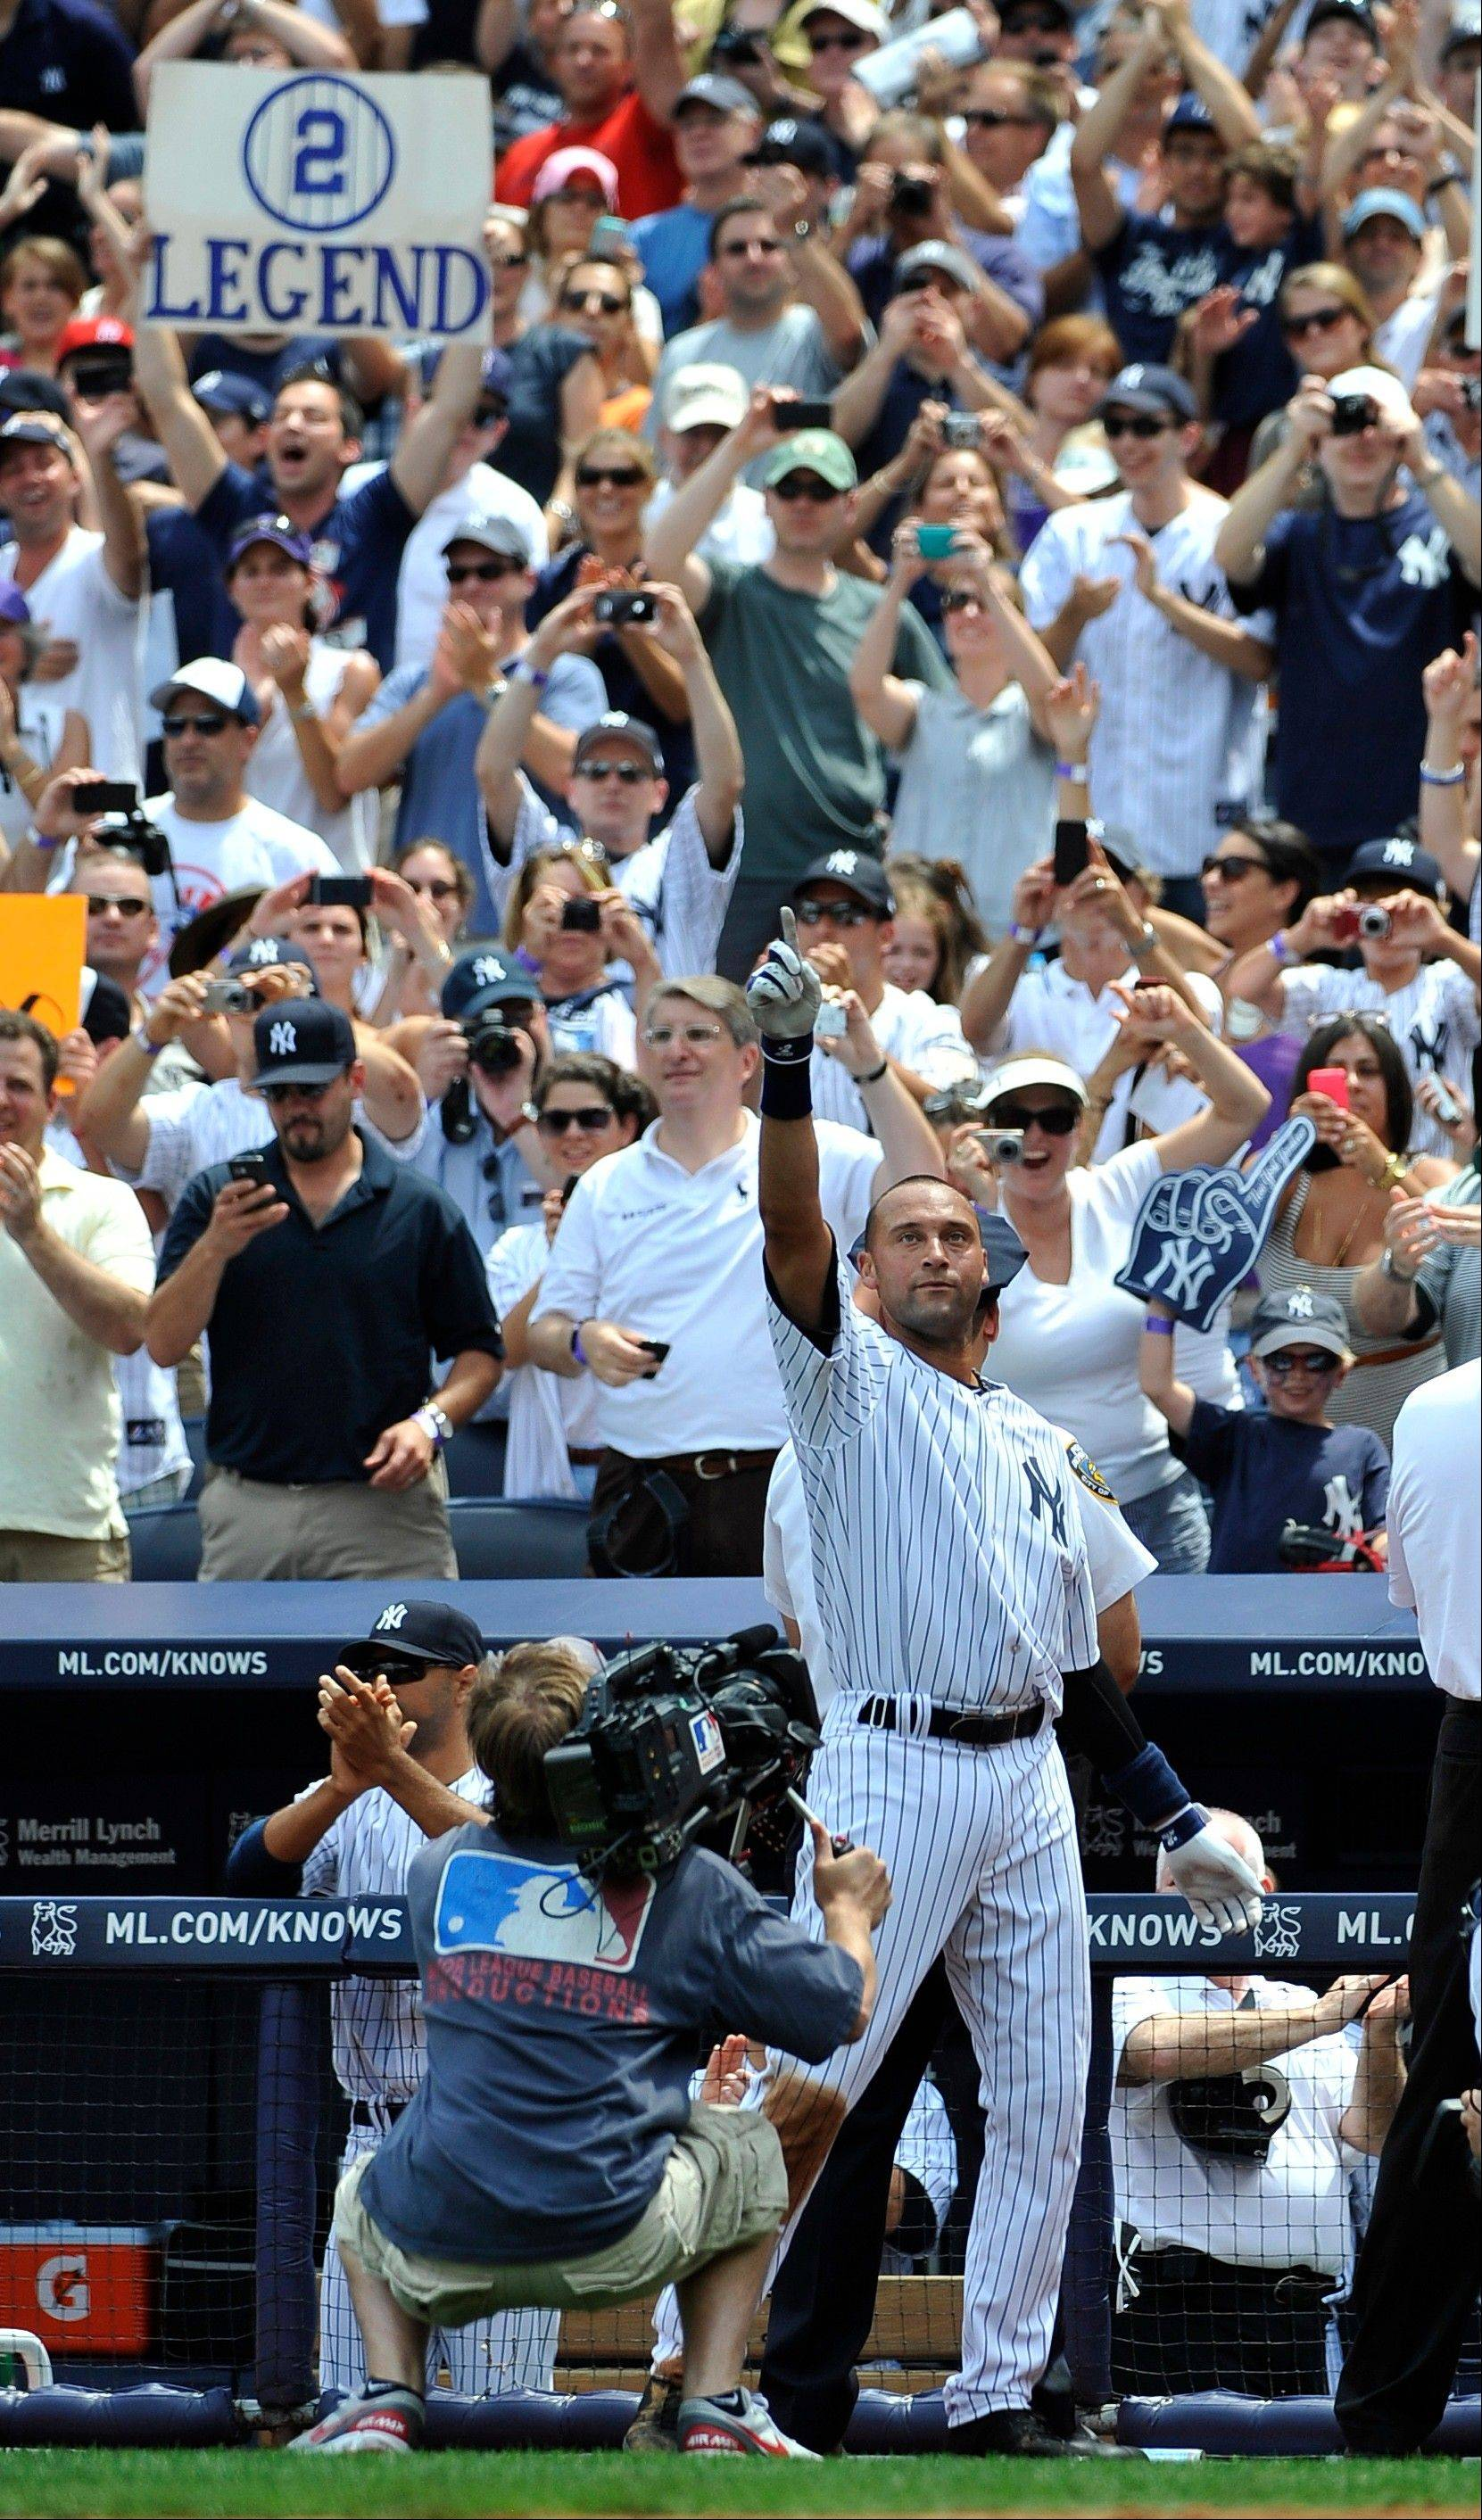 The Yankees' Derek Jeter waves to the cheers of the crowd after he collected his 3,000th hit, a solo home run in the third inning Saturday. Jeter went 5-for-5.